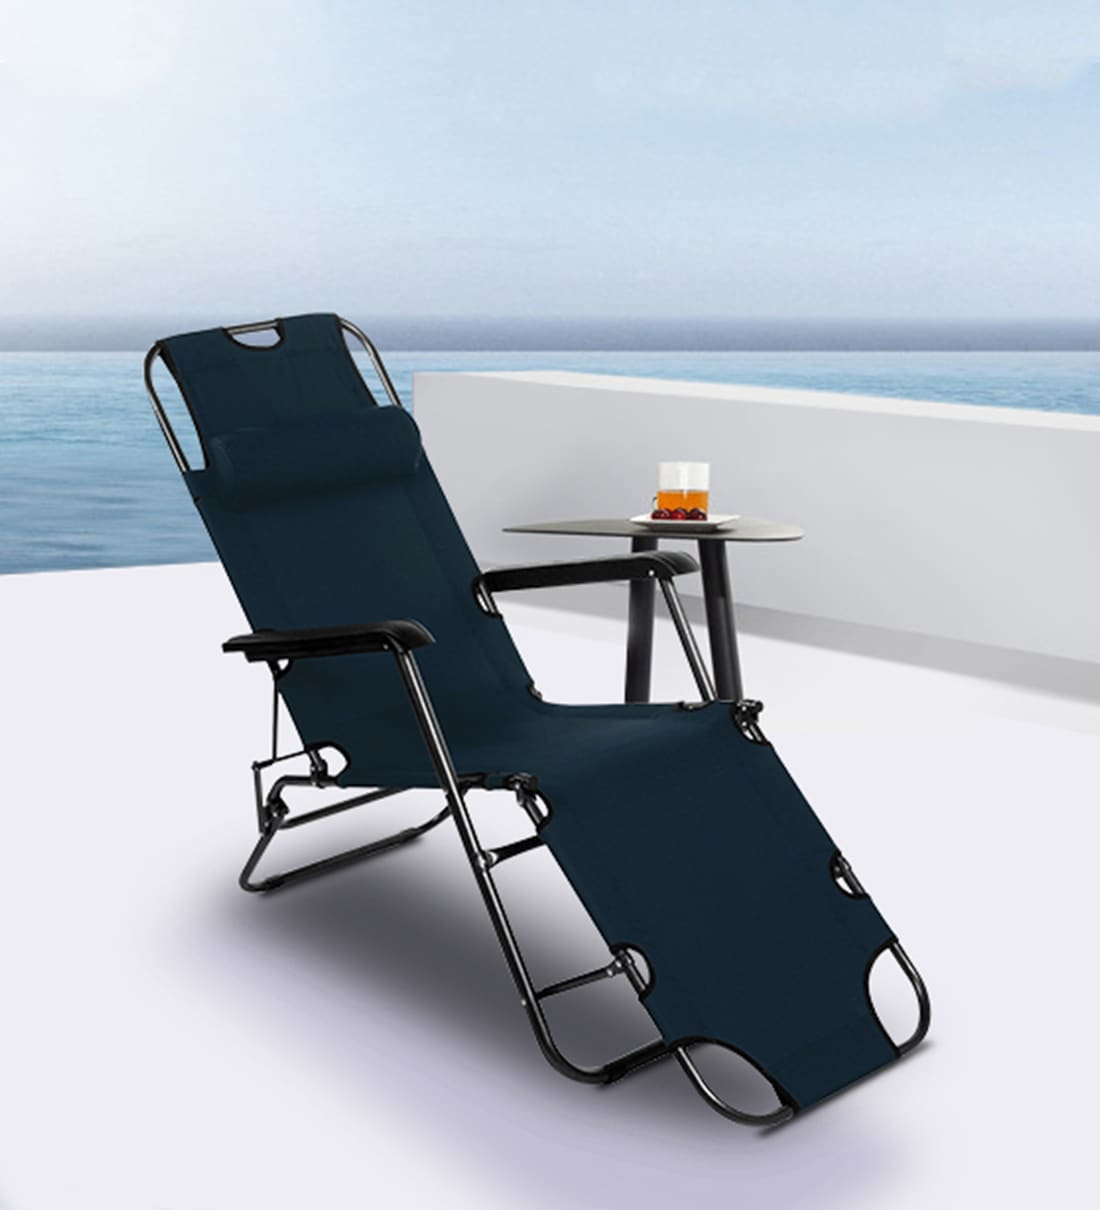 Buy Folding Recliner Beach Lounge Garden Outdoor Portable Chair By Story Home Online Deck Chairs Chairs Furniture Pepperfry Product